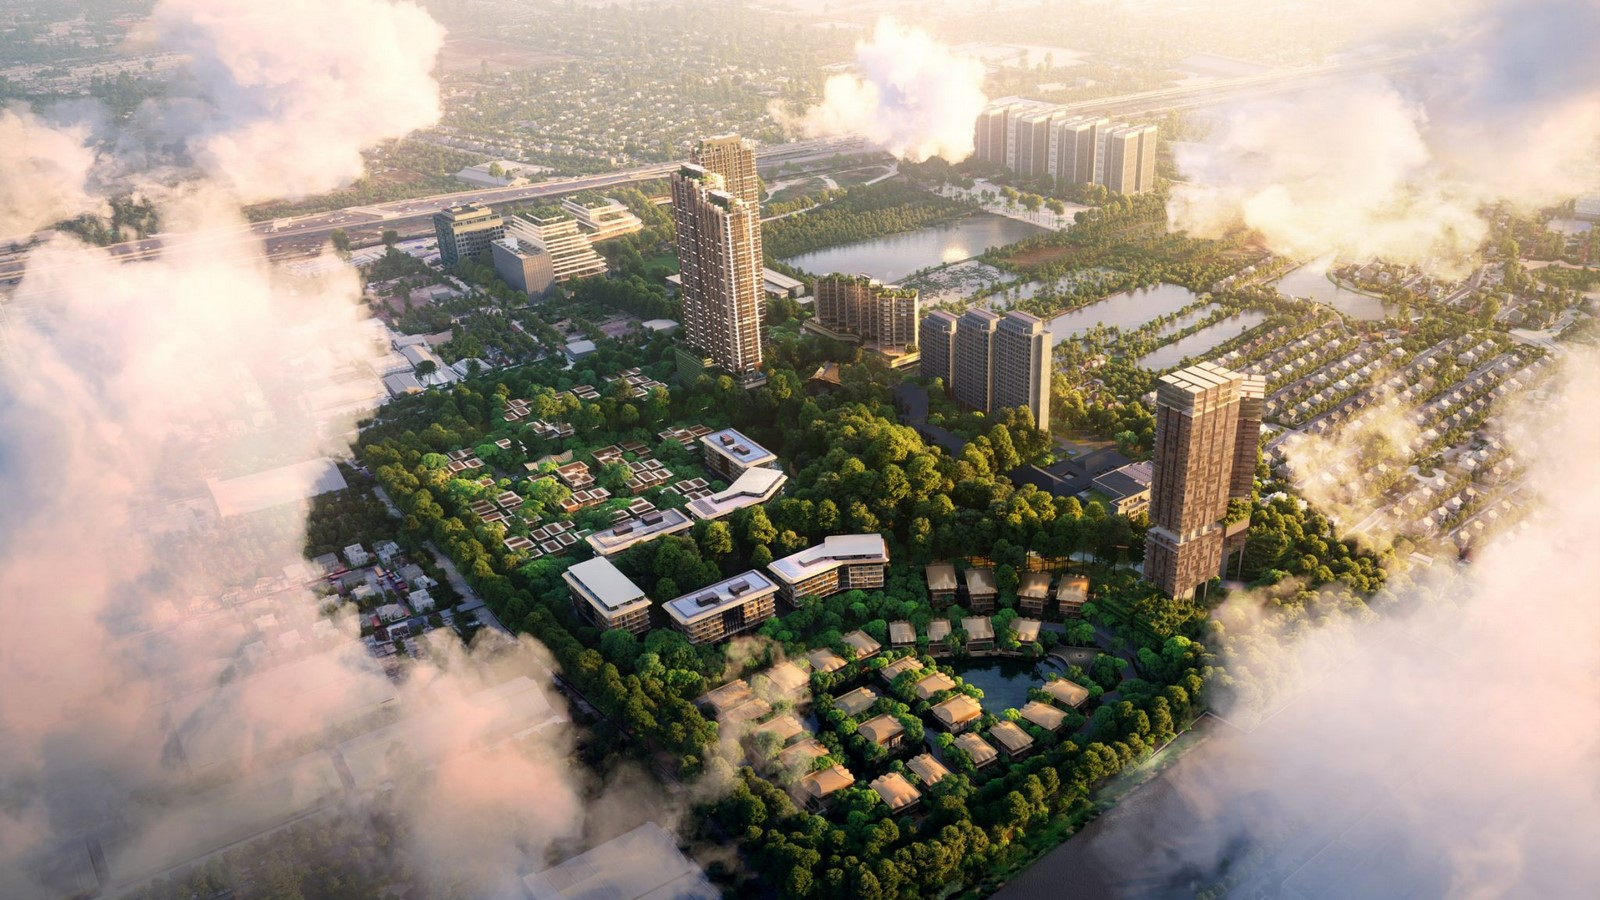 Master Plan for forests neighborhoods in Bangkok unveiled by Foster + Partners Sheet6